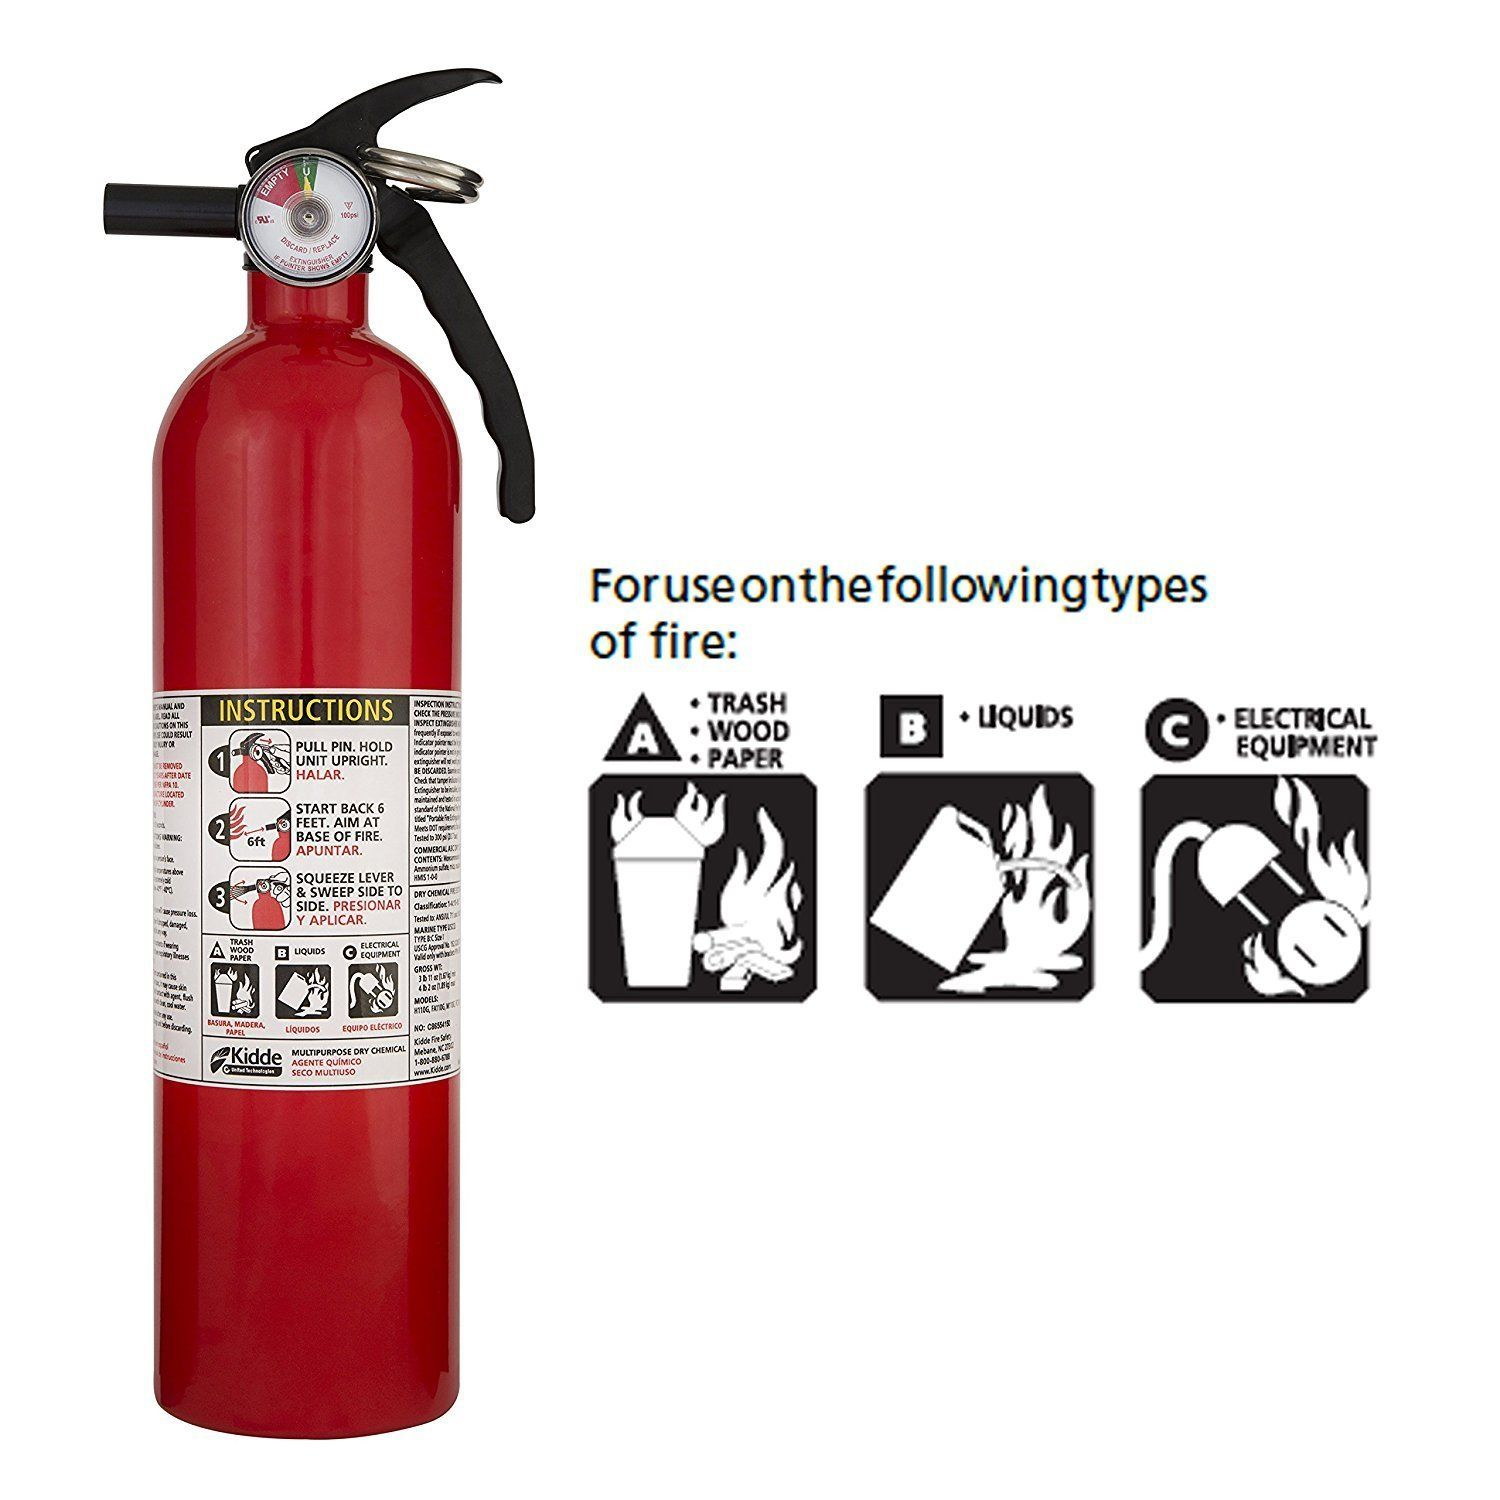 Kidde Fa110 Multi Purpose Fire Extinguisher 1a10bc 1 Pack Home Improvement Amazon Market Place Fire Extinguisher Extinguisher Fire Prevention